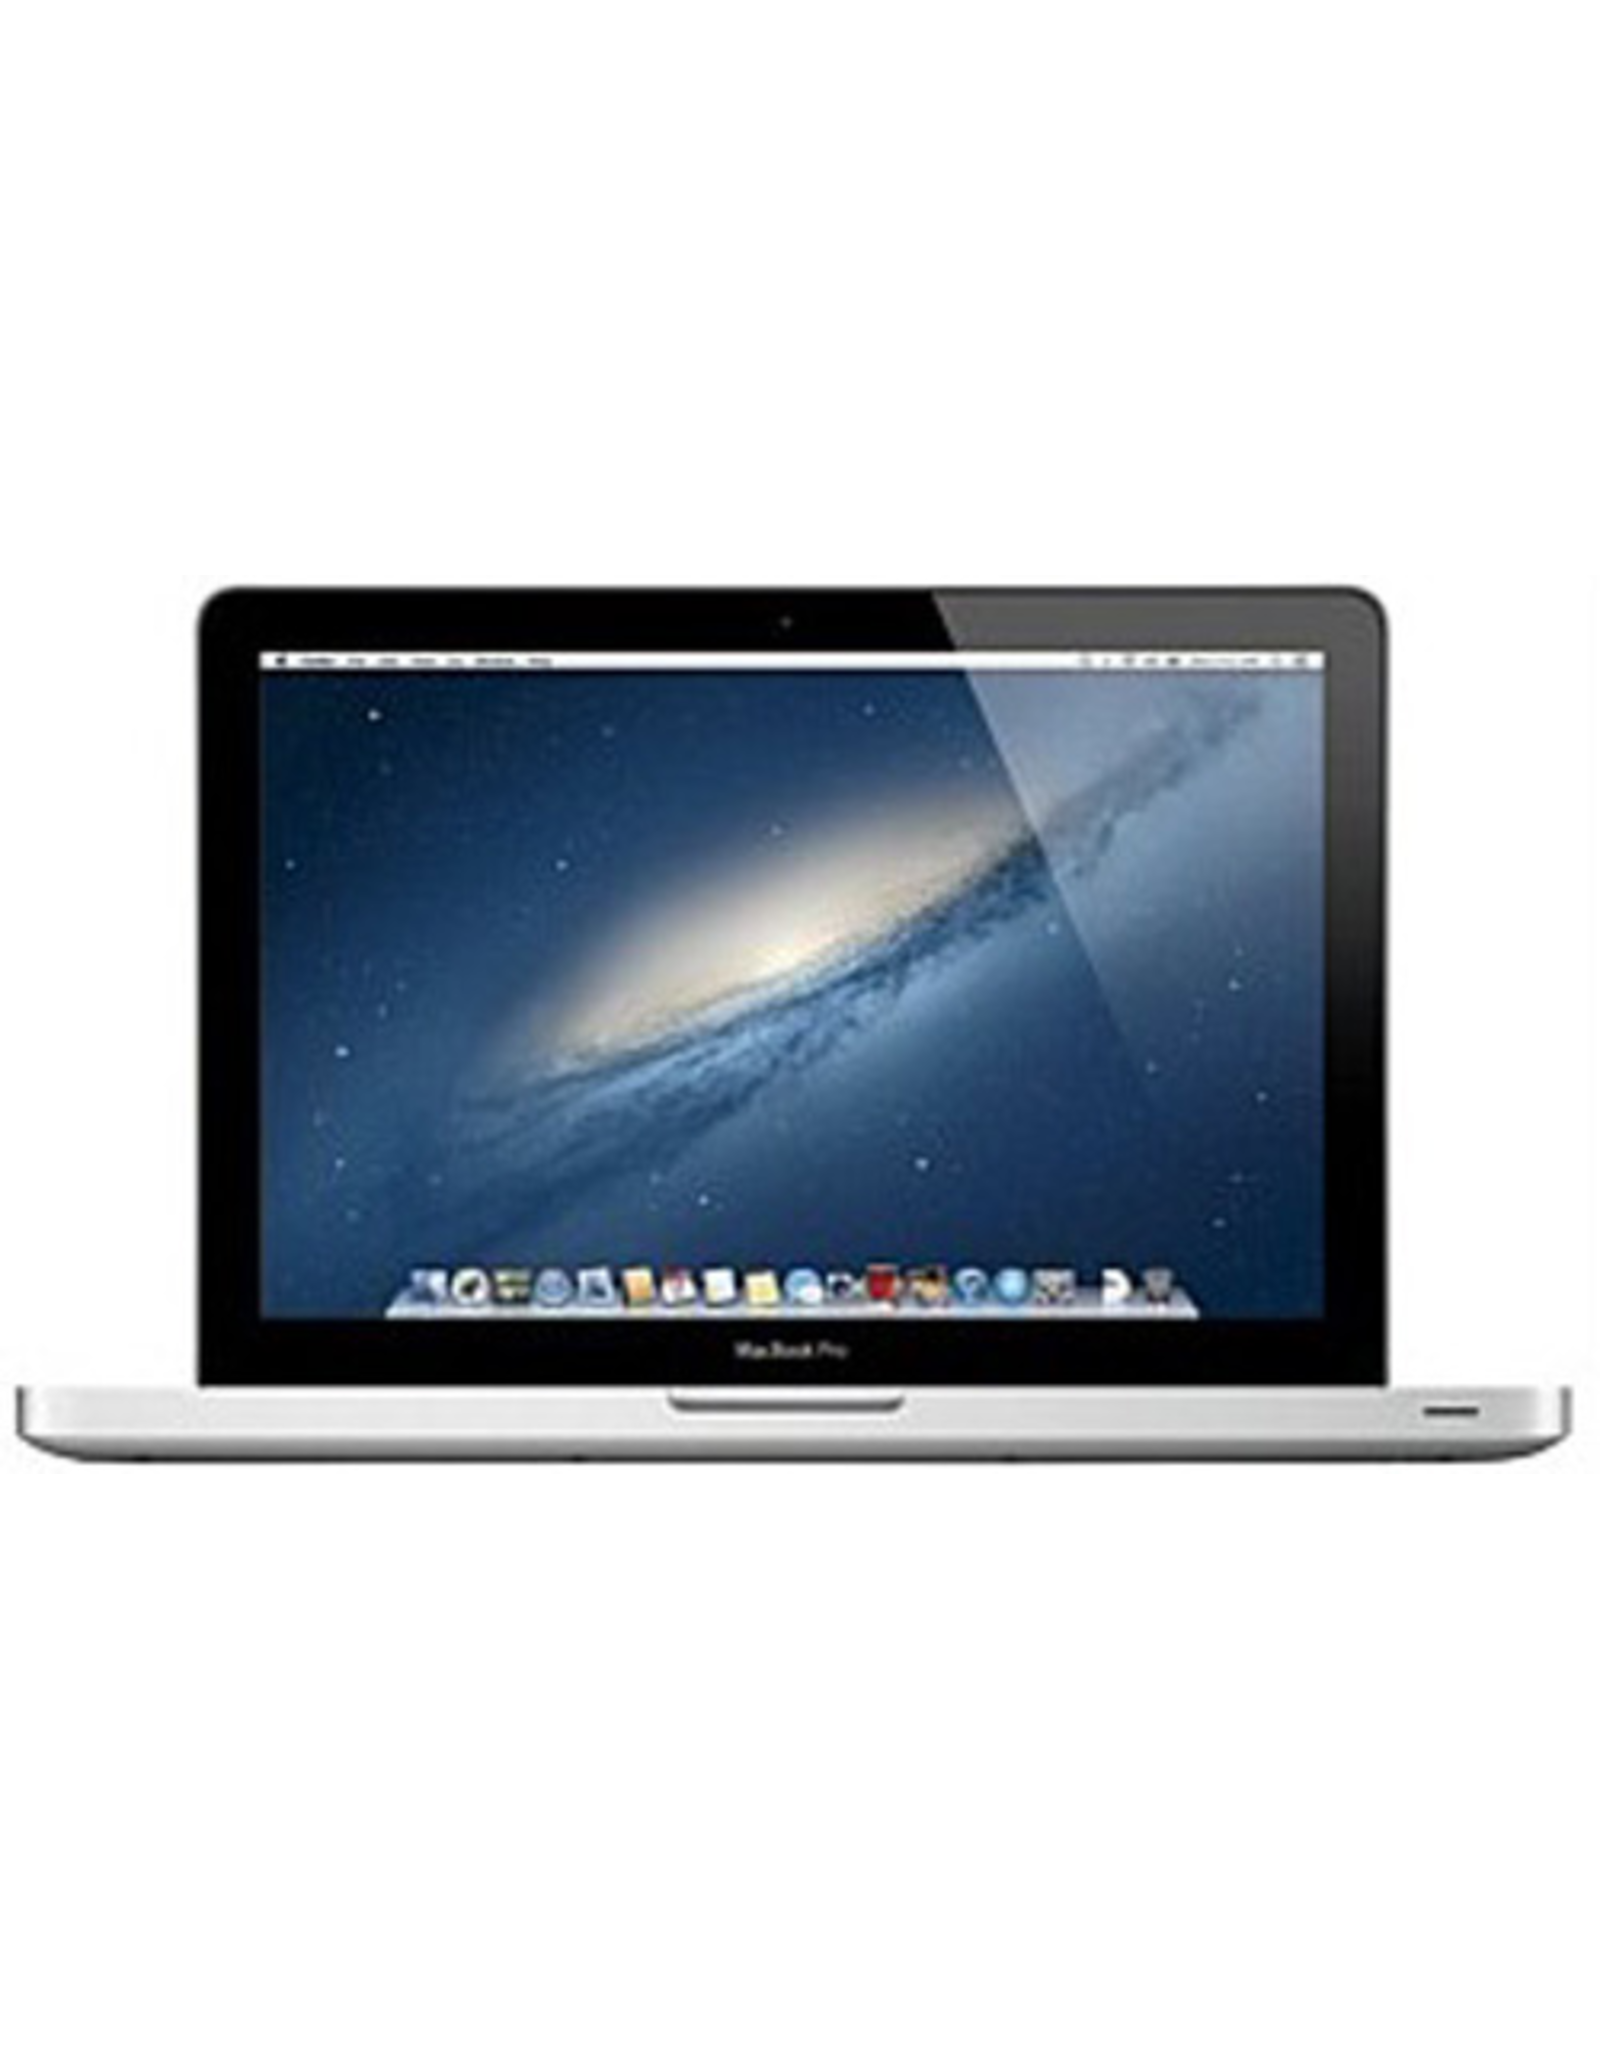 """Apple Apple Macbook Pro 15"""" 2.3GHz quad-core Intel Core i7 Turbo Boost up to 3.3GHz 4GB 1600MHz memory 500GB 5400-rpm hard drive1 Intel HD Graphics 4000 NVIDIA GeForce GT 650M with 512MB of GDDR5 memory Built-in battery (7 hours"""